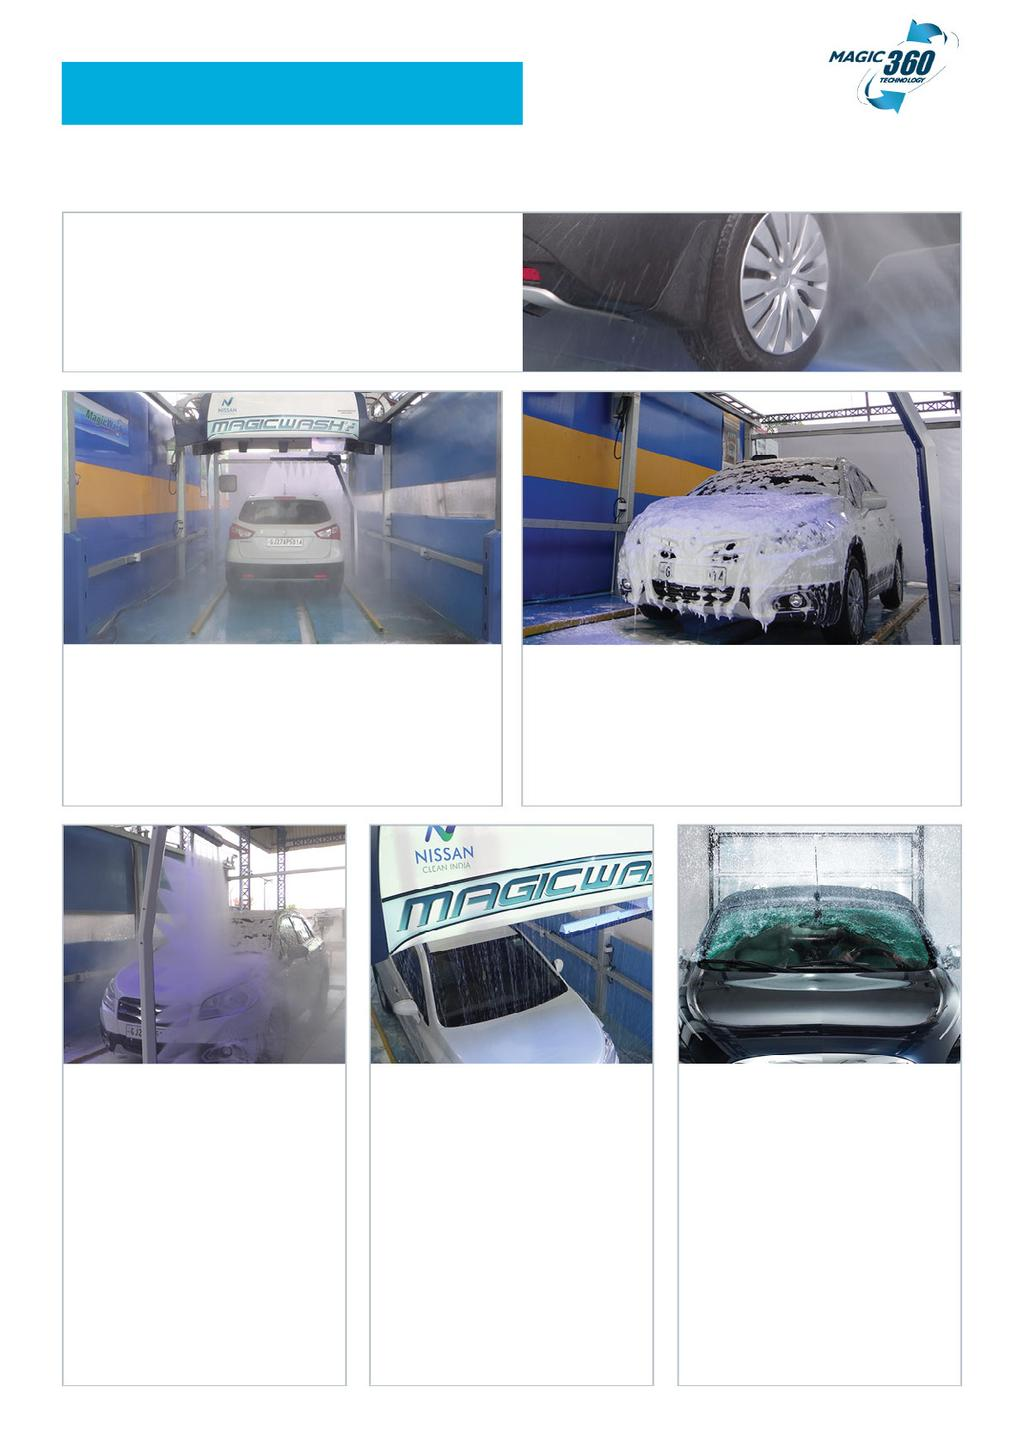 WORKING CYCLES 1. WHEEL AND CHASSIS WASH High pressure pre-wash for under chassis and wheels.